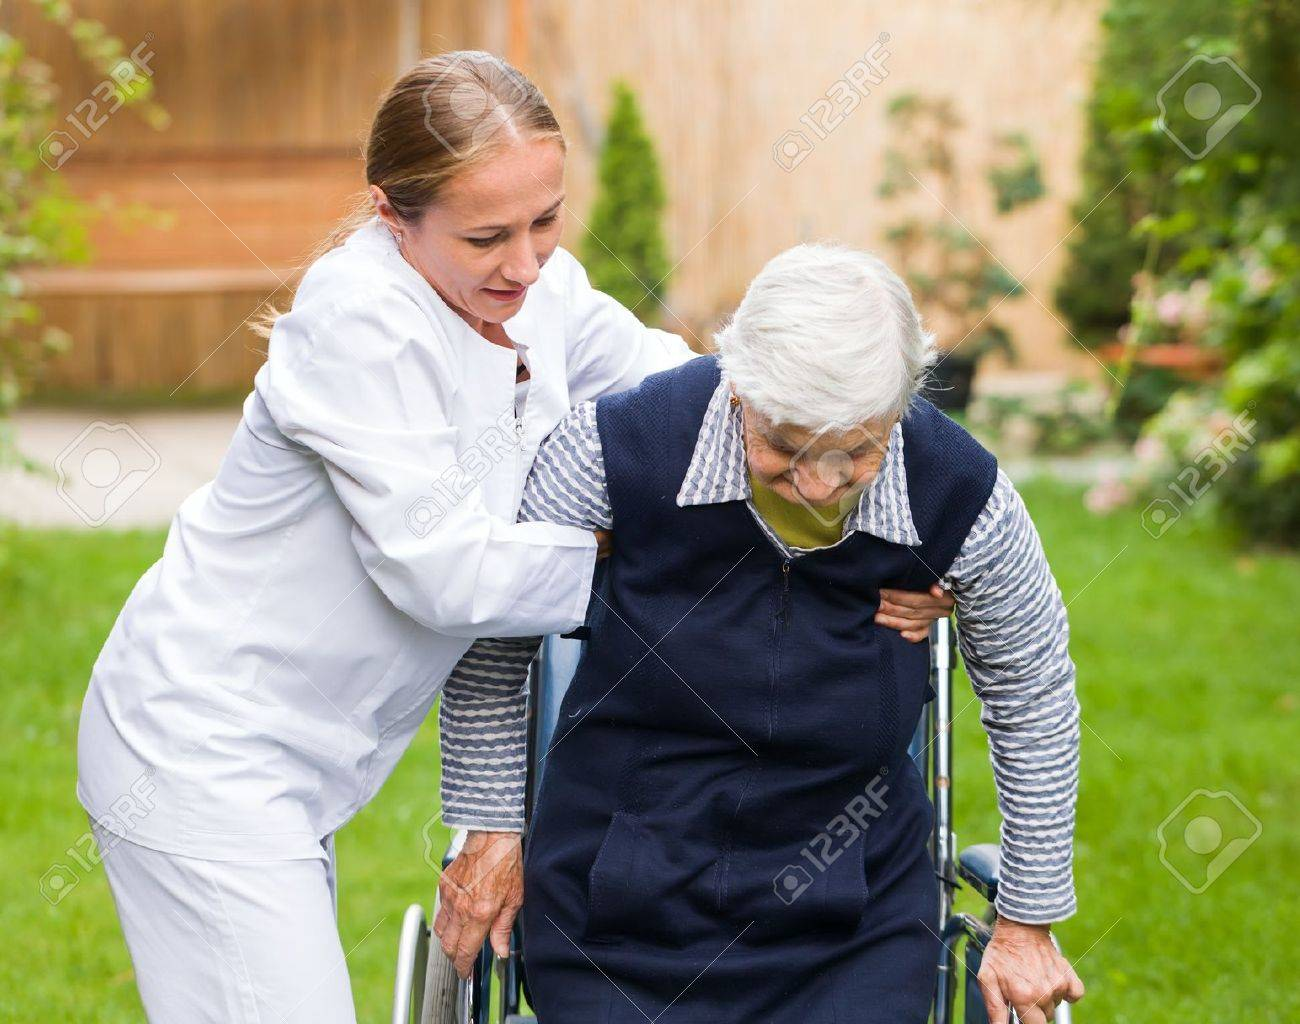 Photo of young carer helping the elderly woman Standard-Bild - 44600682